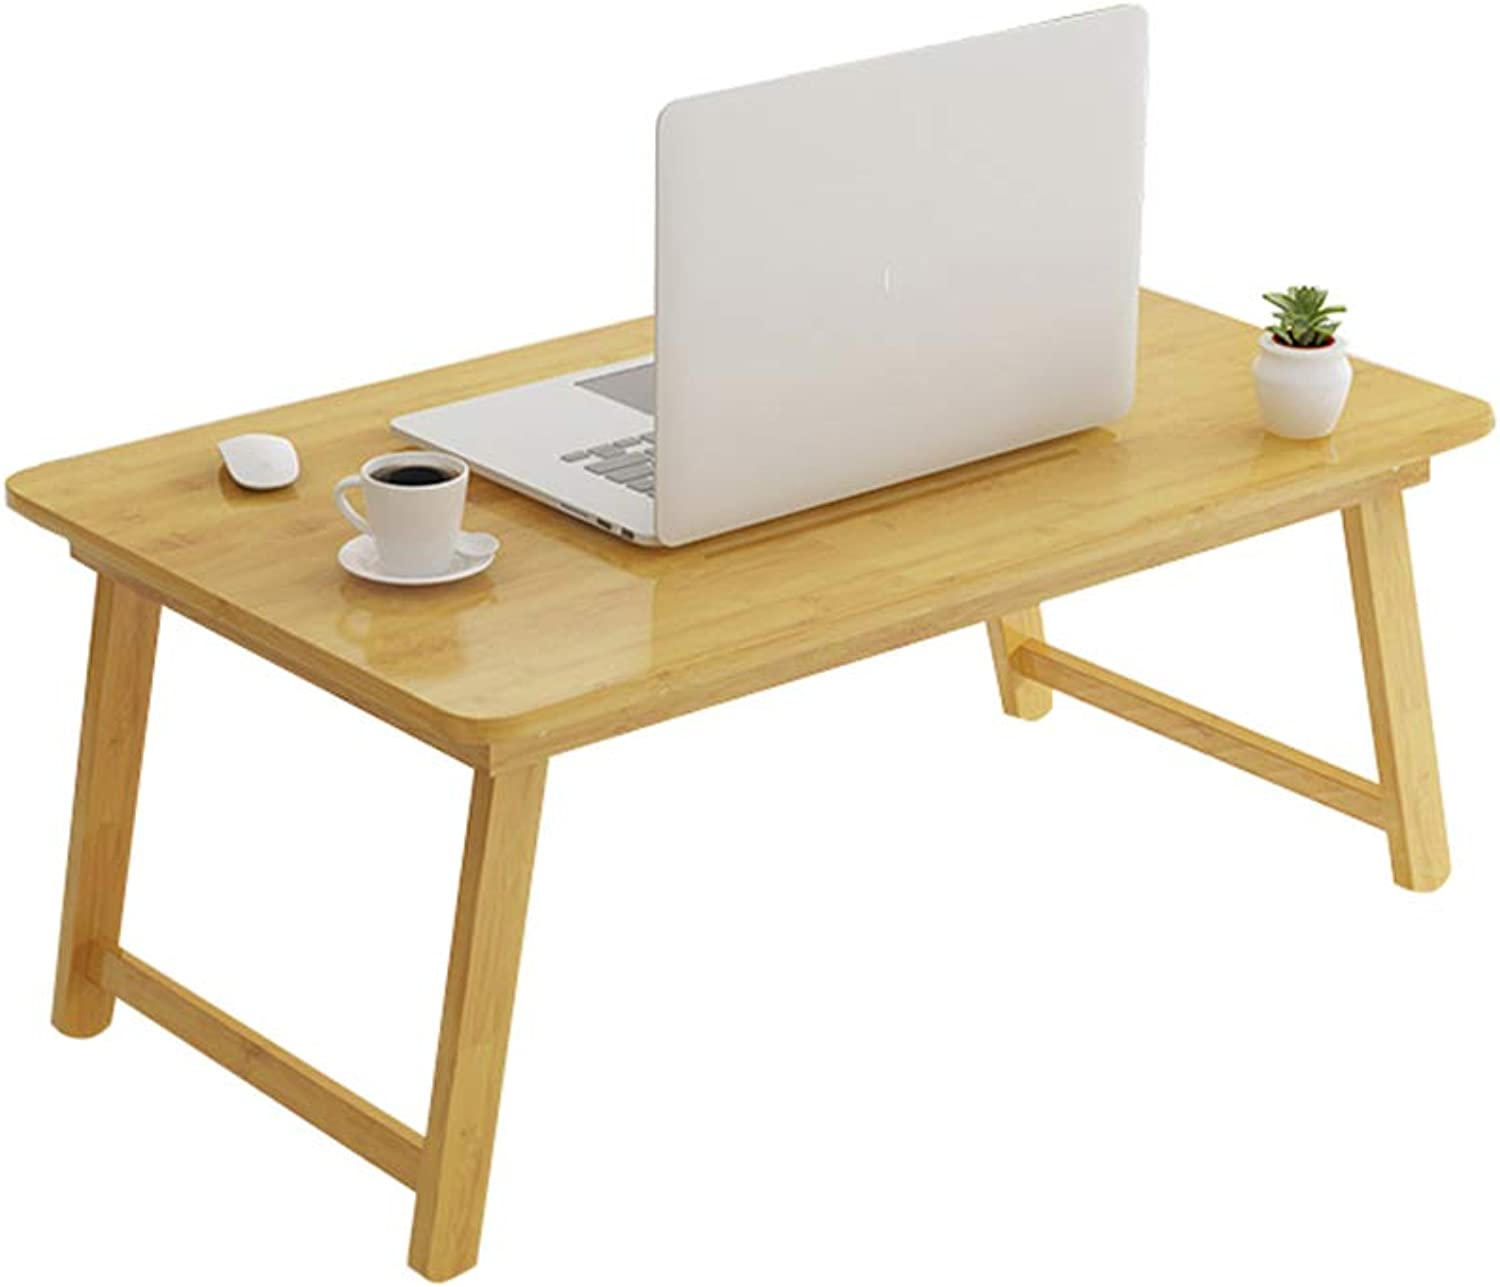 C-J-Xin Leisure table, Made of bamboo Small table bedroom Bed table living room balcony Tea table Foldable Simple table easy to carry Household table (Size   B-70  42  29cm)